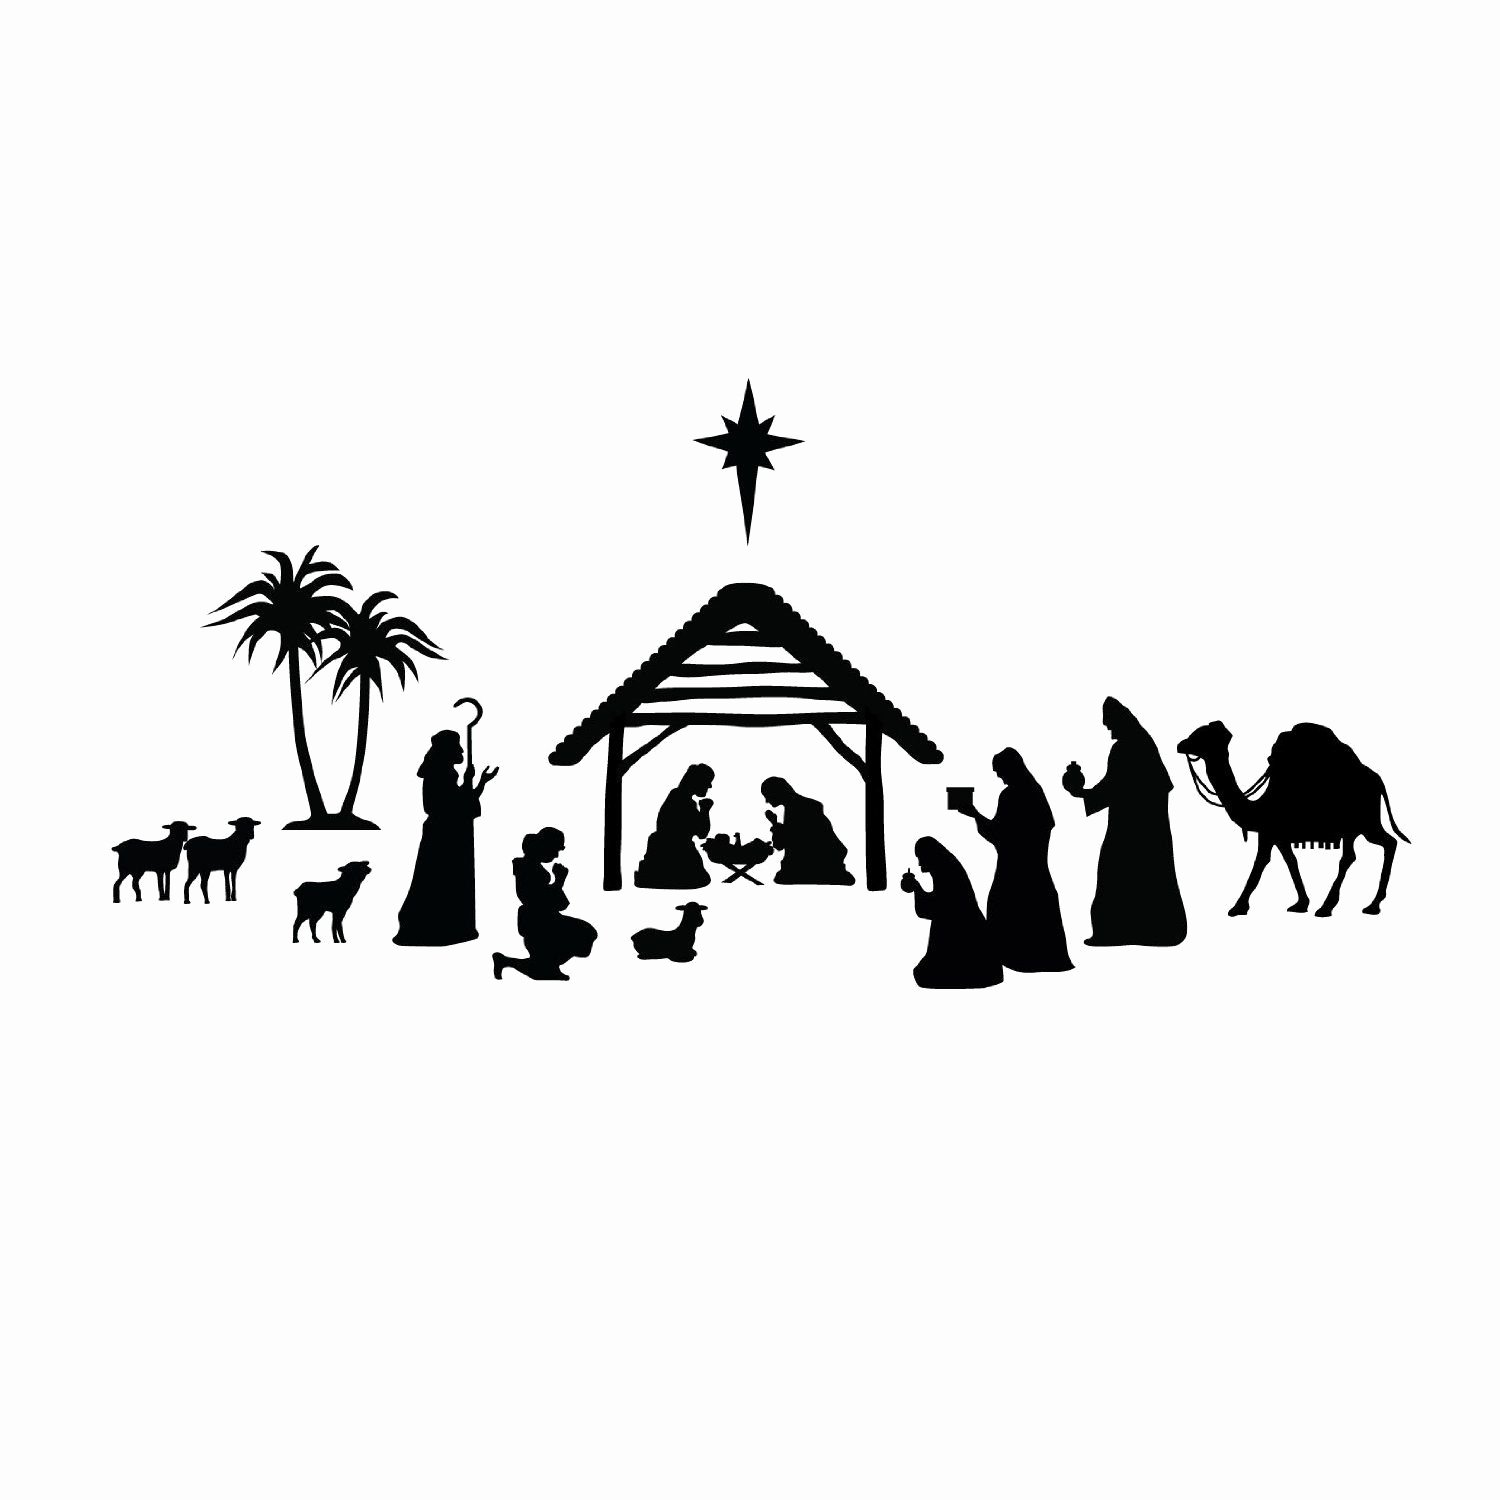 Nativity Scene Silhouette Pattern Free Lovely Related Image Neat Diy Christmas Gifts